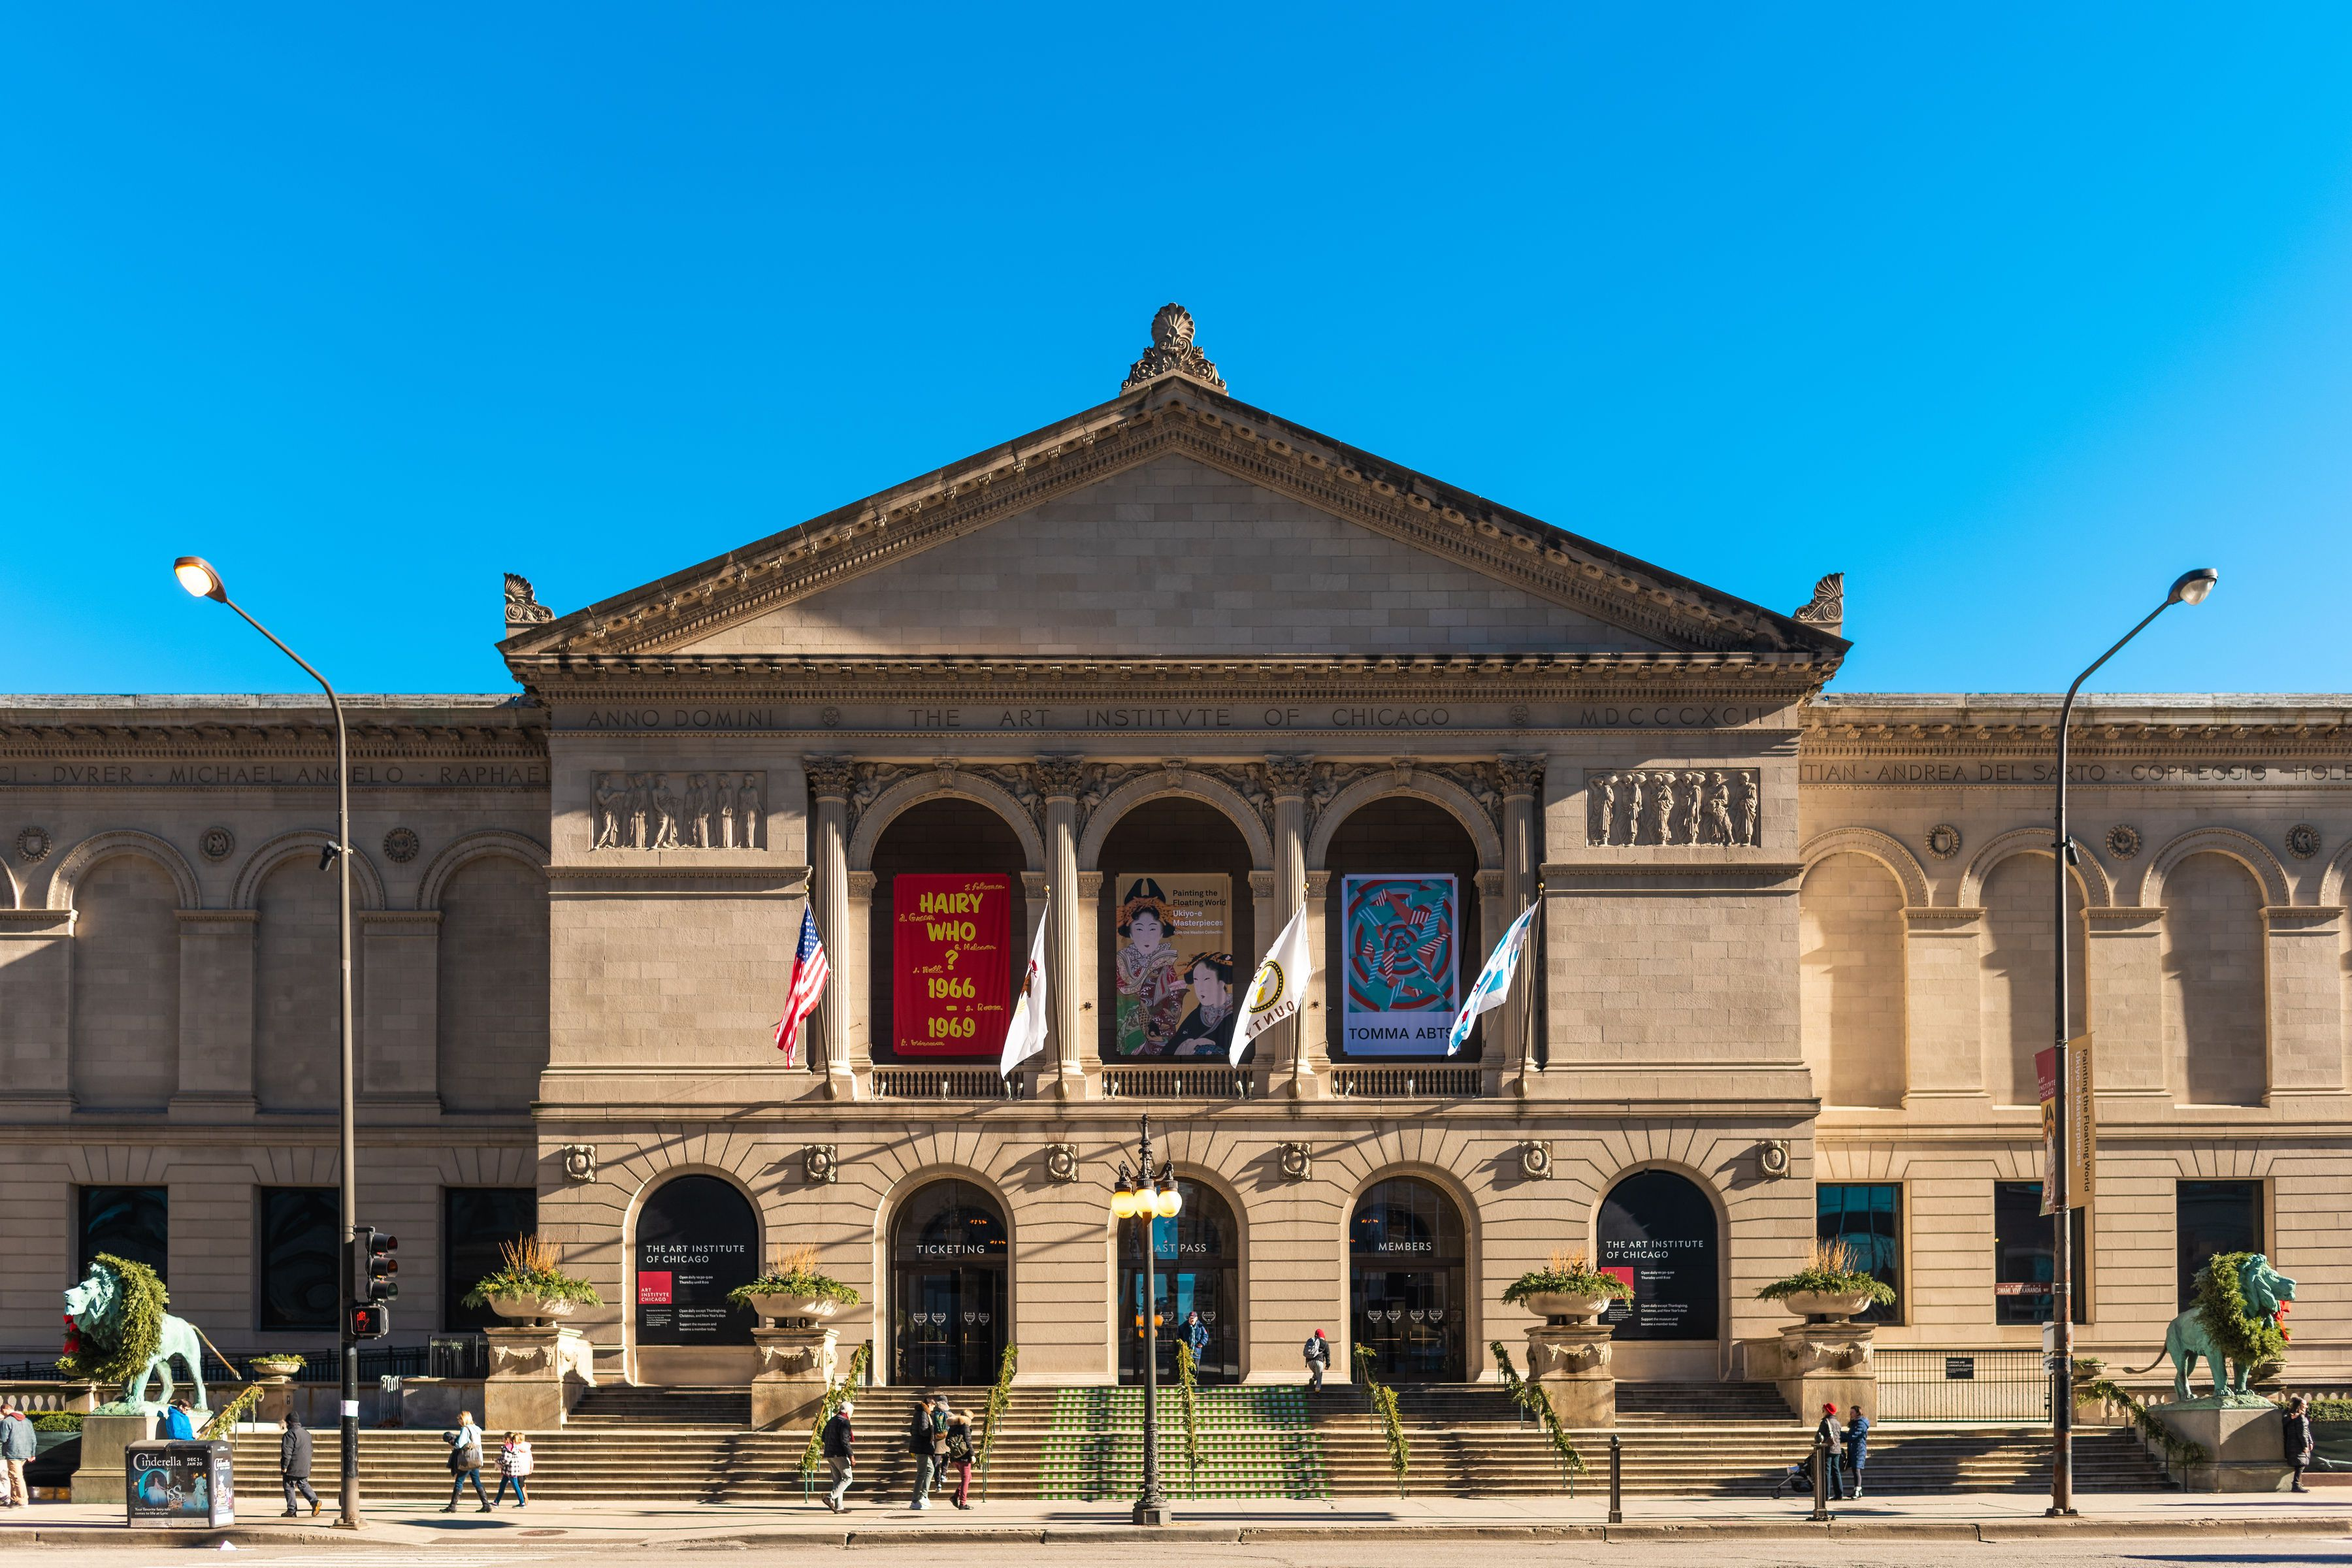 Exterior of the art institute of Chicago on a cloudless day